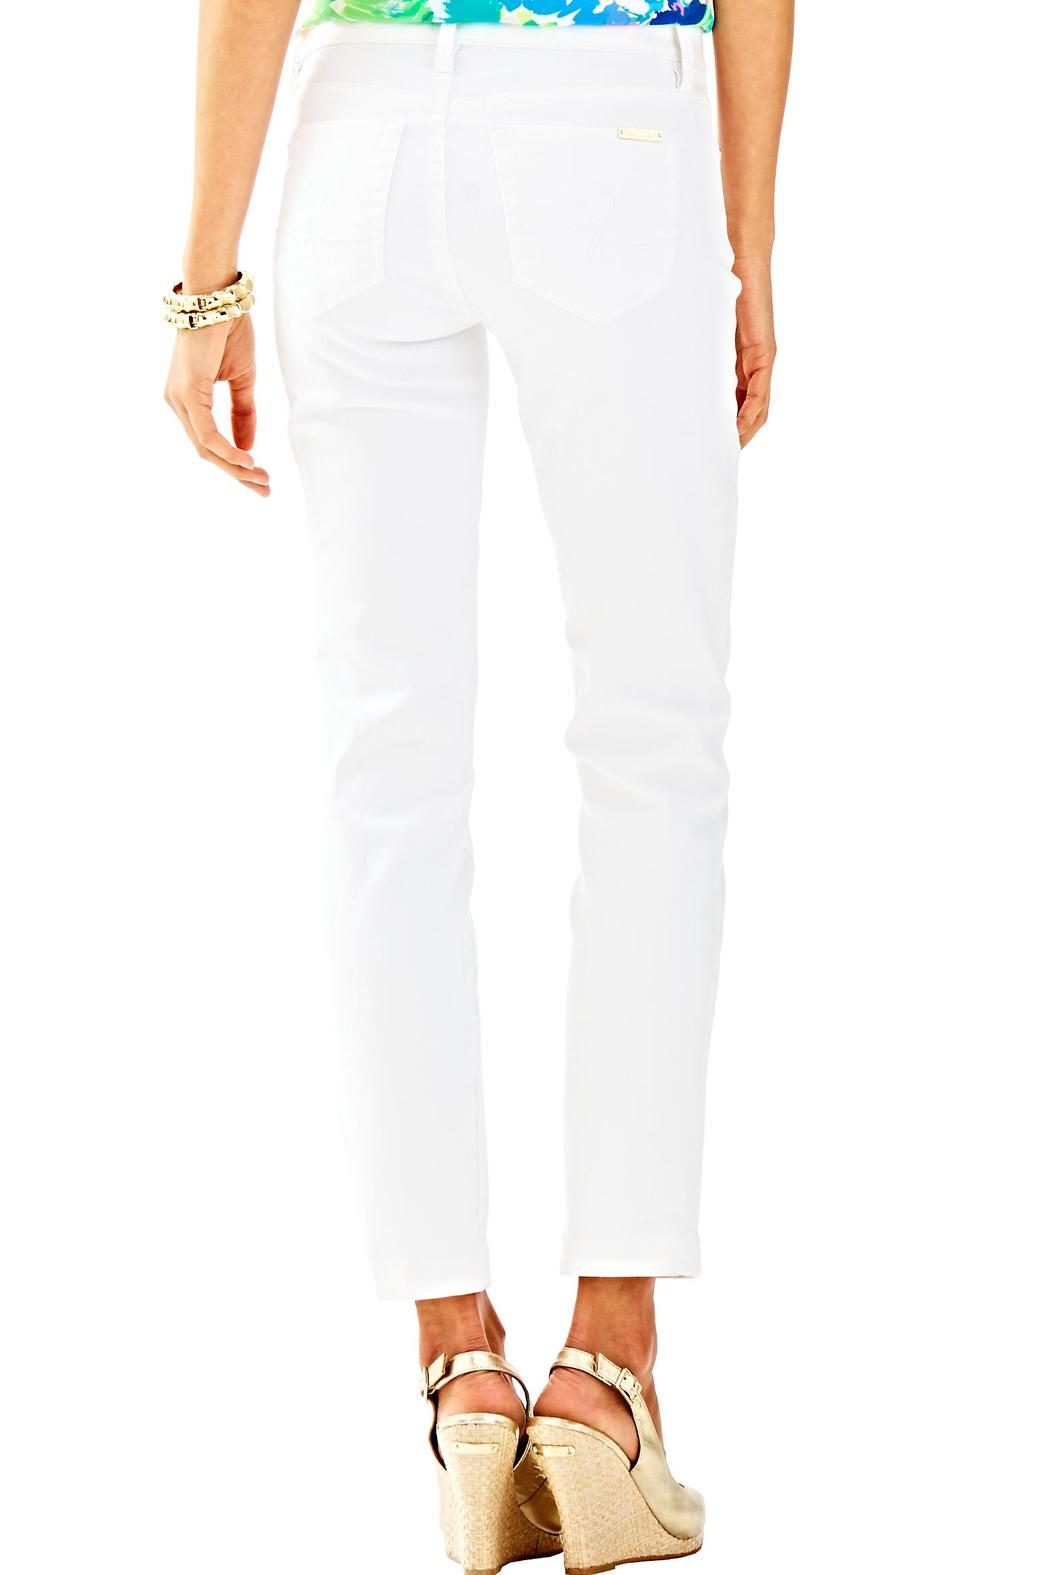 Lilly Pulitzer South Ocean Crop Jean - Front Full Image